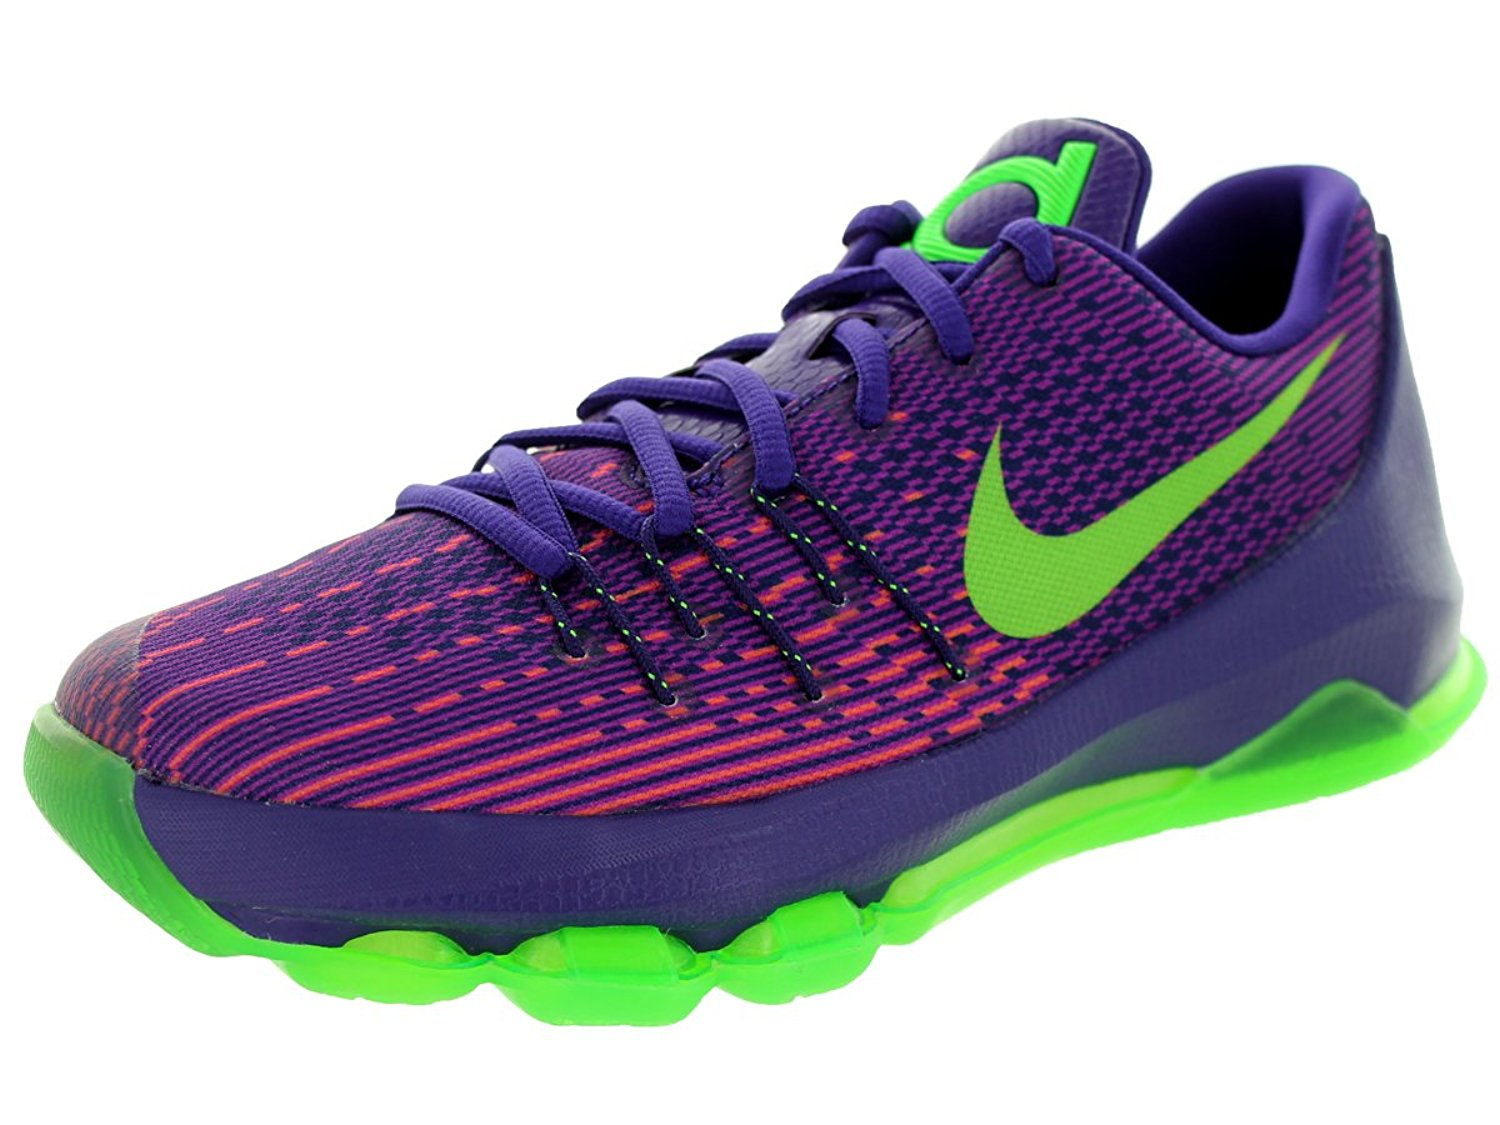 best sneakers 80fd8 33860 ... order nike kd 8 buy nike shoes sneakers bluelilyandblue 34909 2b3c7